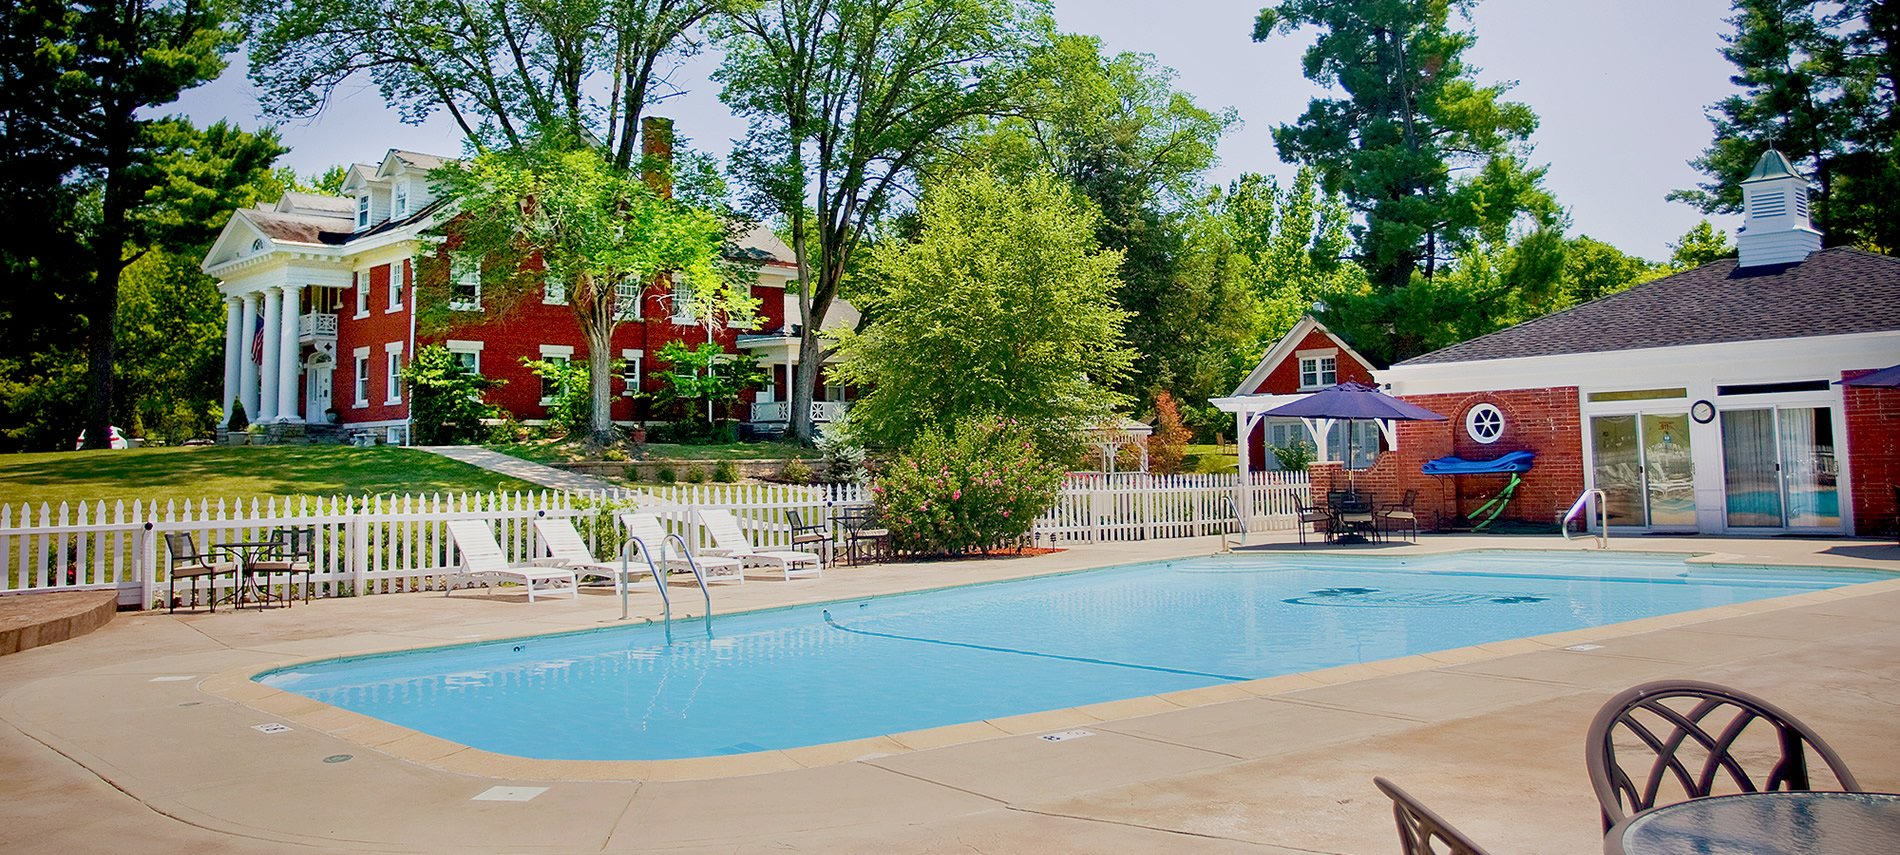 A crystal blue swimming pool in the foreground with a red brick mansion in the background